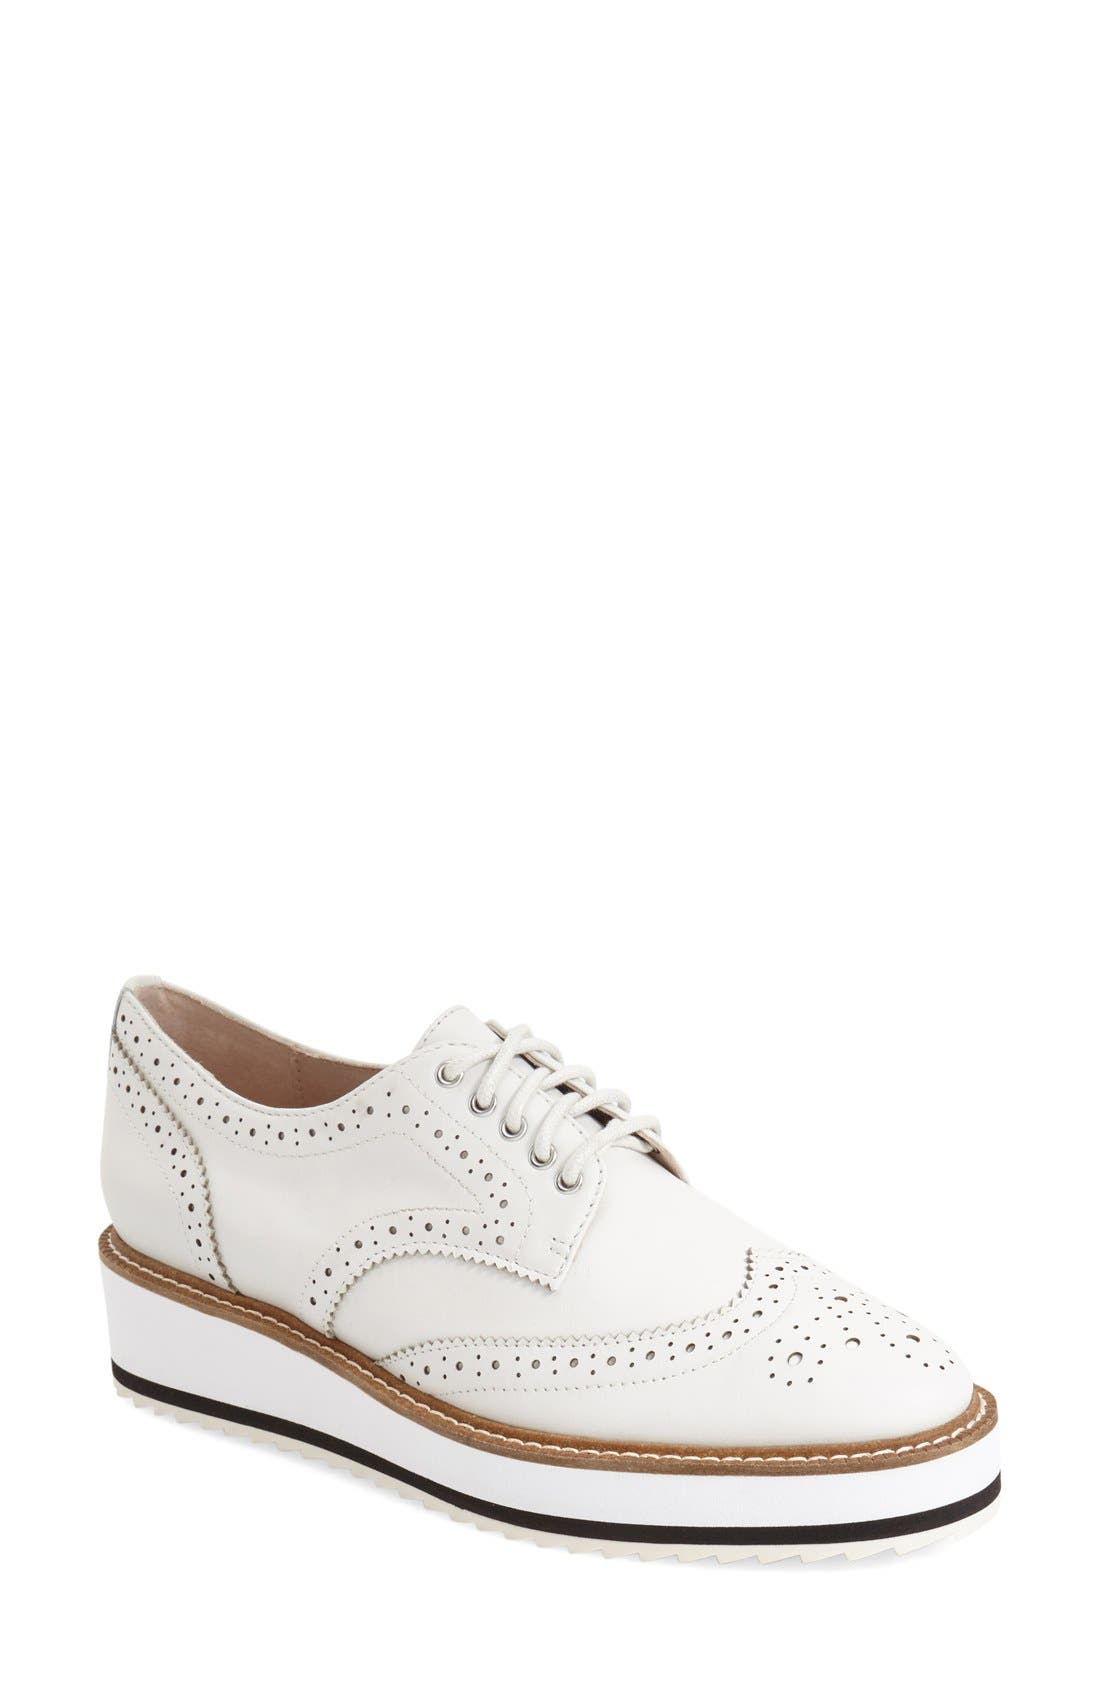 Shellys London Emma Platform Oxford (Women)